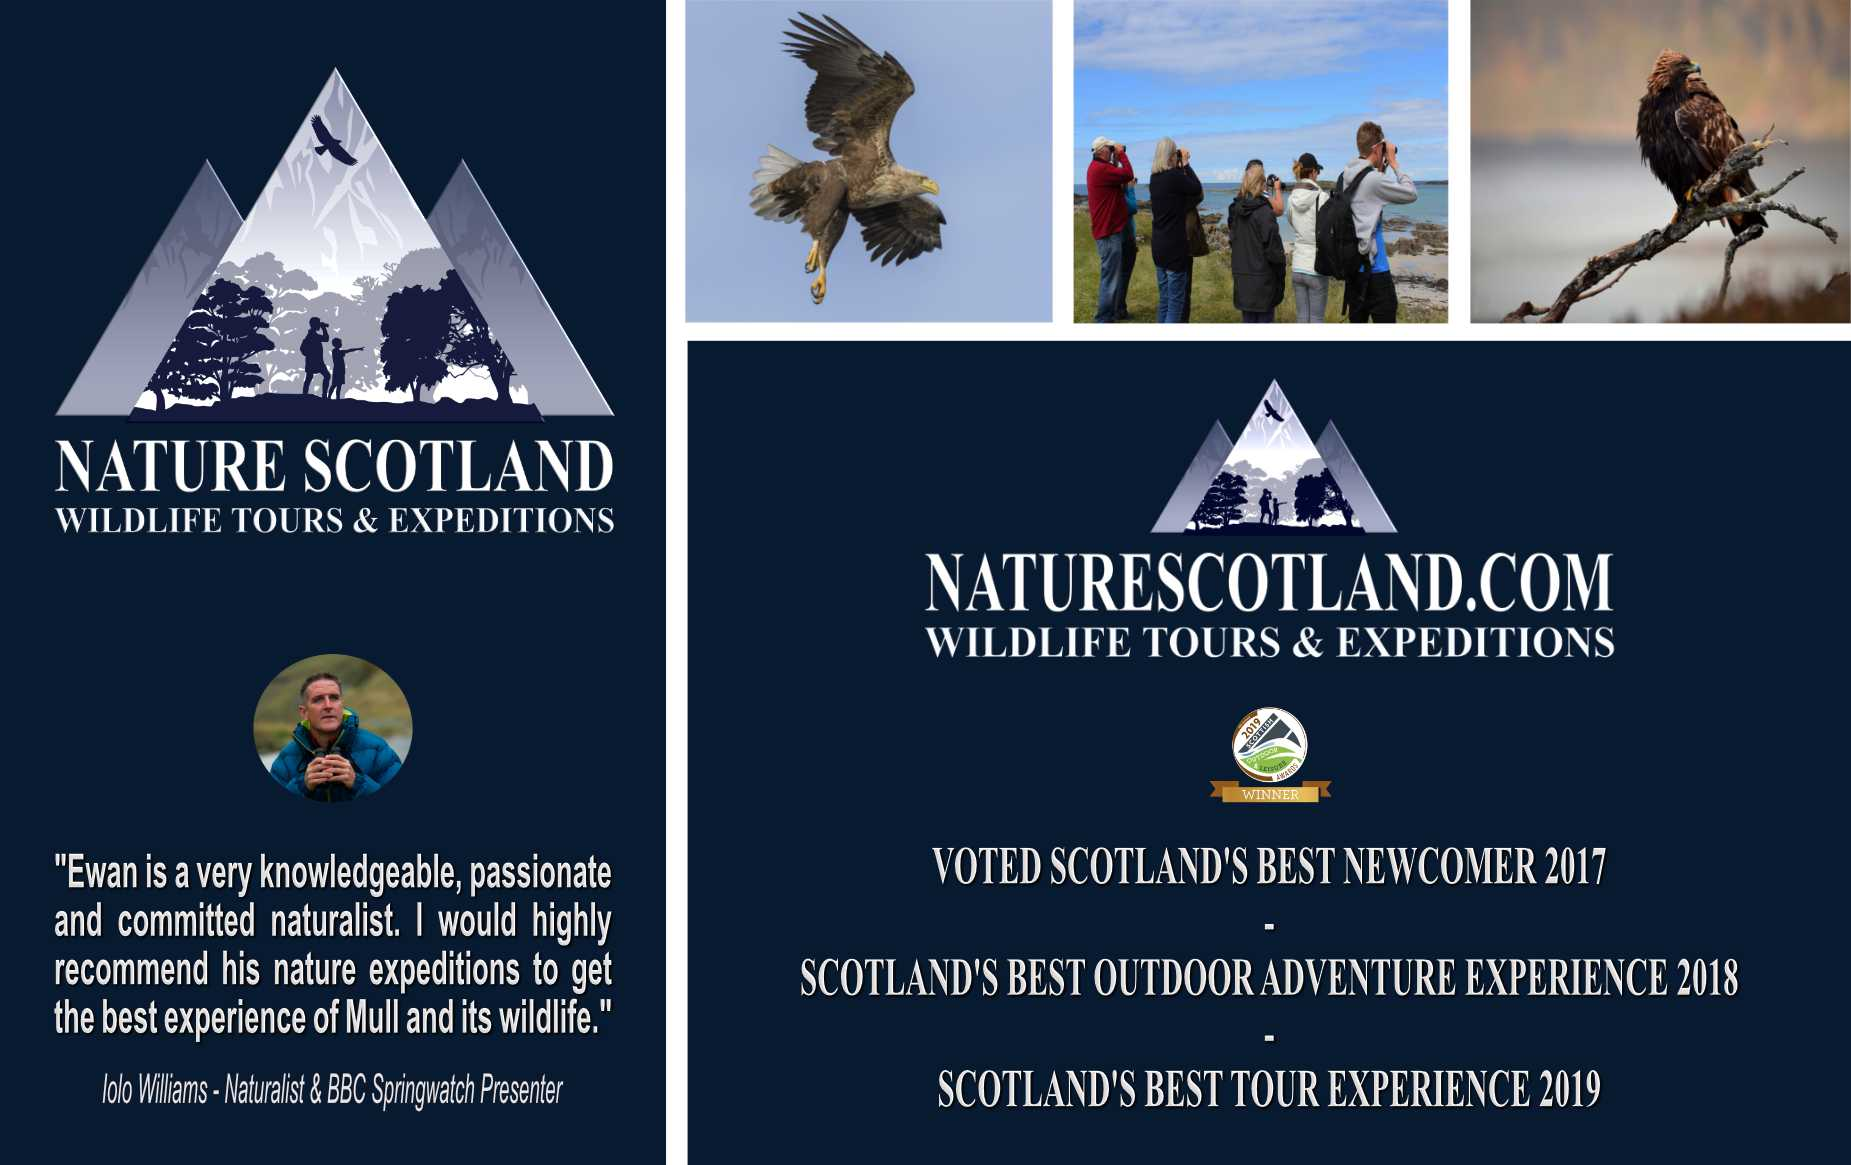 Nature Scotland Header Image